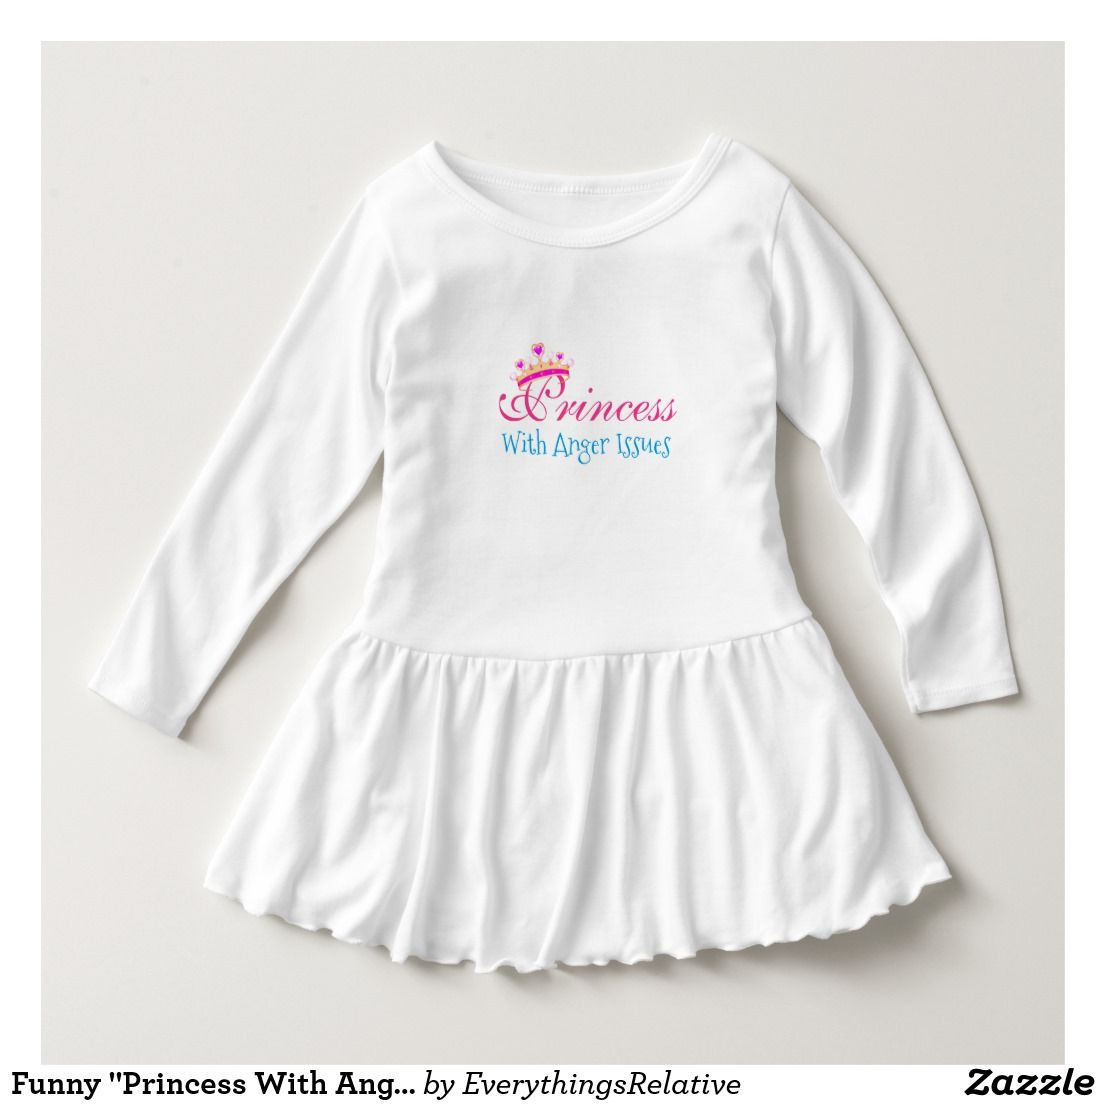 Toddler//Kids Long Sleeve T-Shirt Im Going to Love Whales When I Grow Up Just Like My Cousin